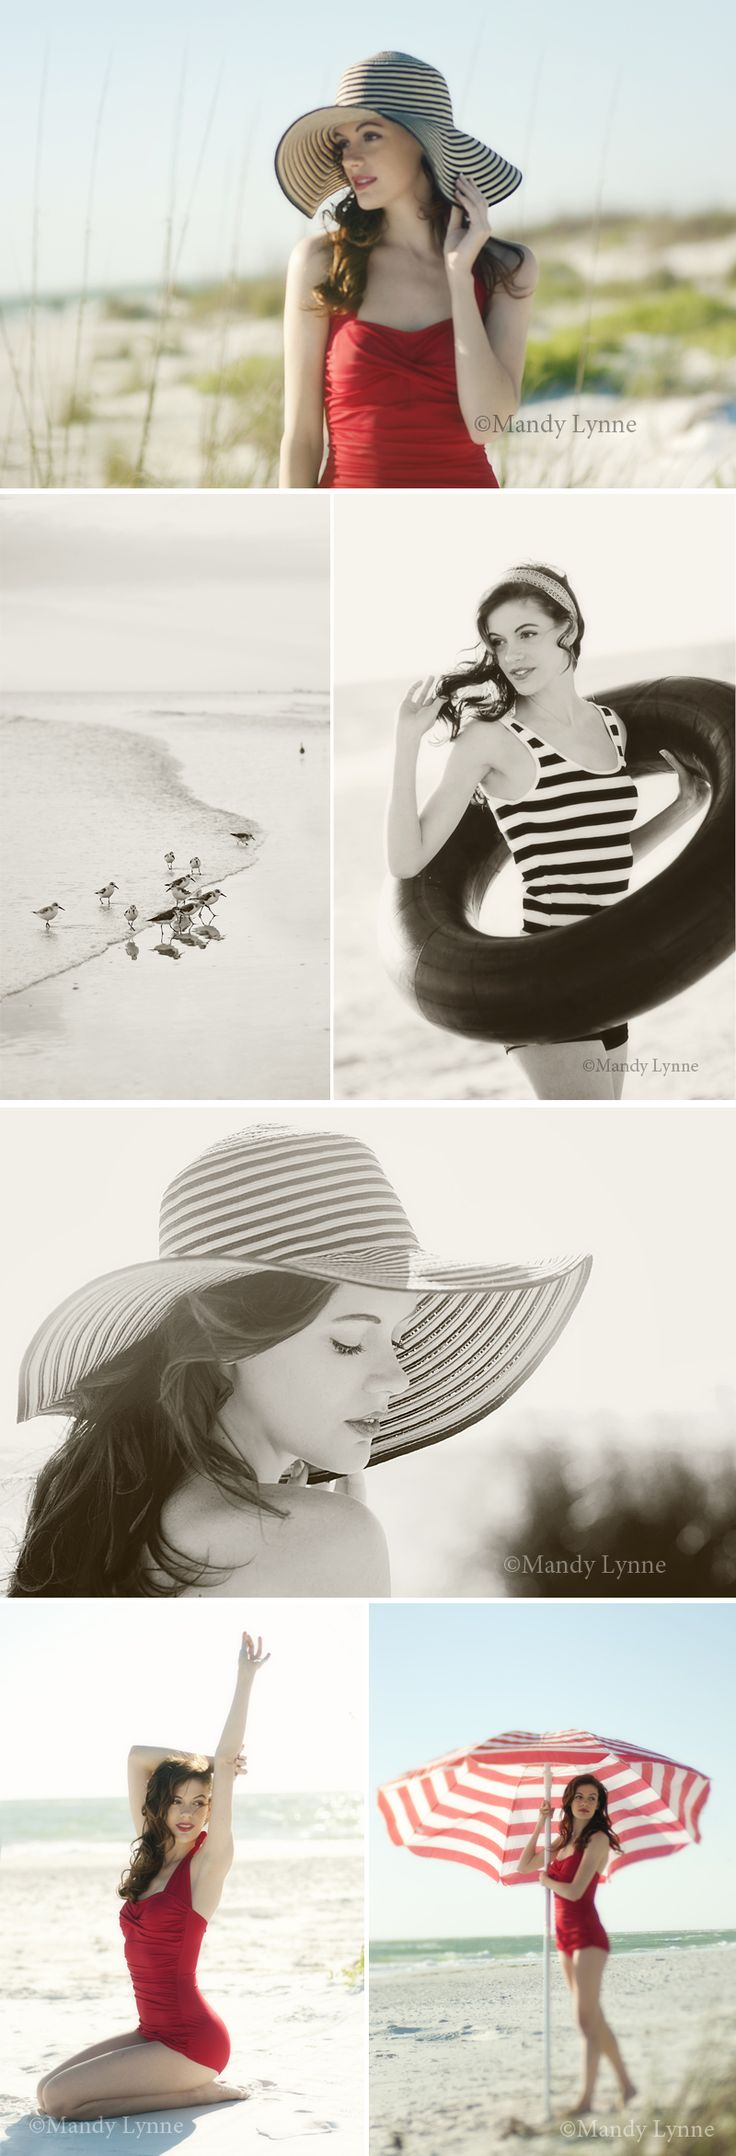 Retro beach shoot.  Could be so super cute with family with small kids.